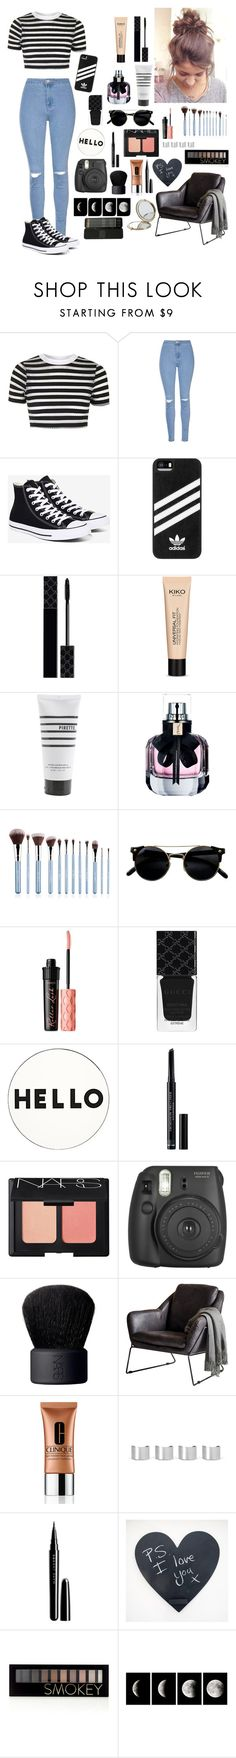 """•There's no one else but you•"" by islandformisfits ❤ liked on Polyvore featuring Topshop, Glamorous, Converse, adidas, Gucci, Pirette, Yves Saint Laurent, Benefit, Lisa Perry and Christian Dior"